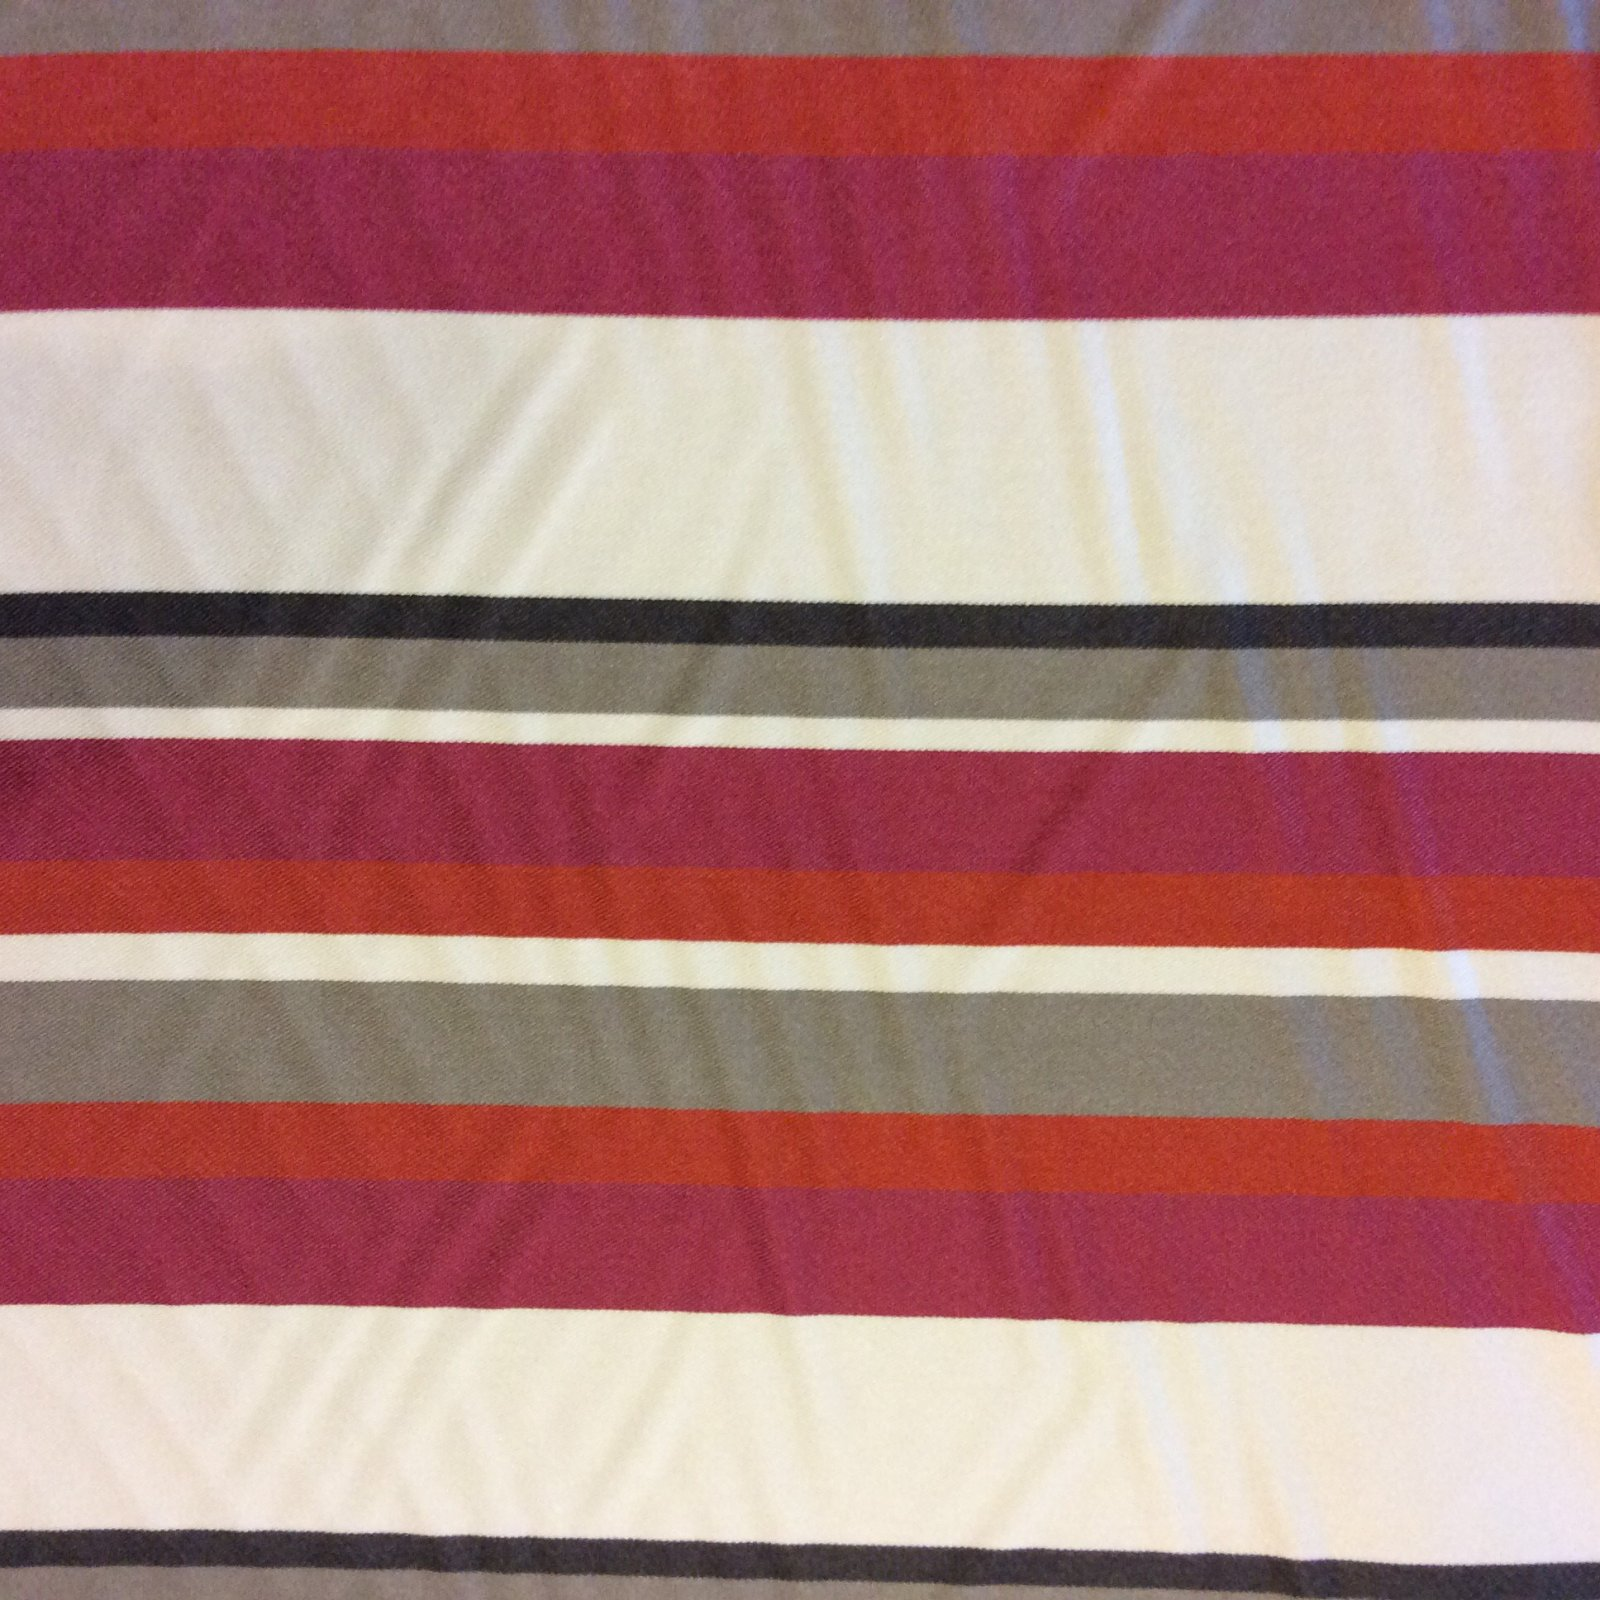 Candy Stripe Tropical Stripe Heavy Cotton Home Dec Drapery Fabric Upholstery Fabric NL079